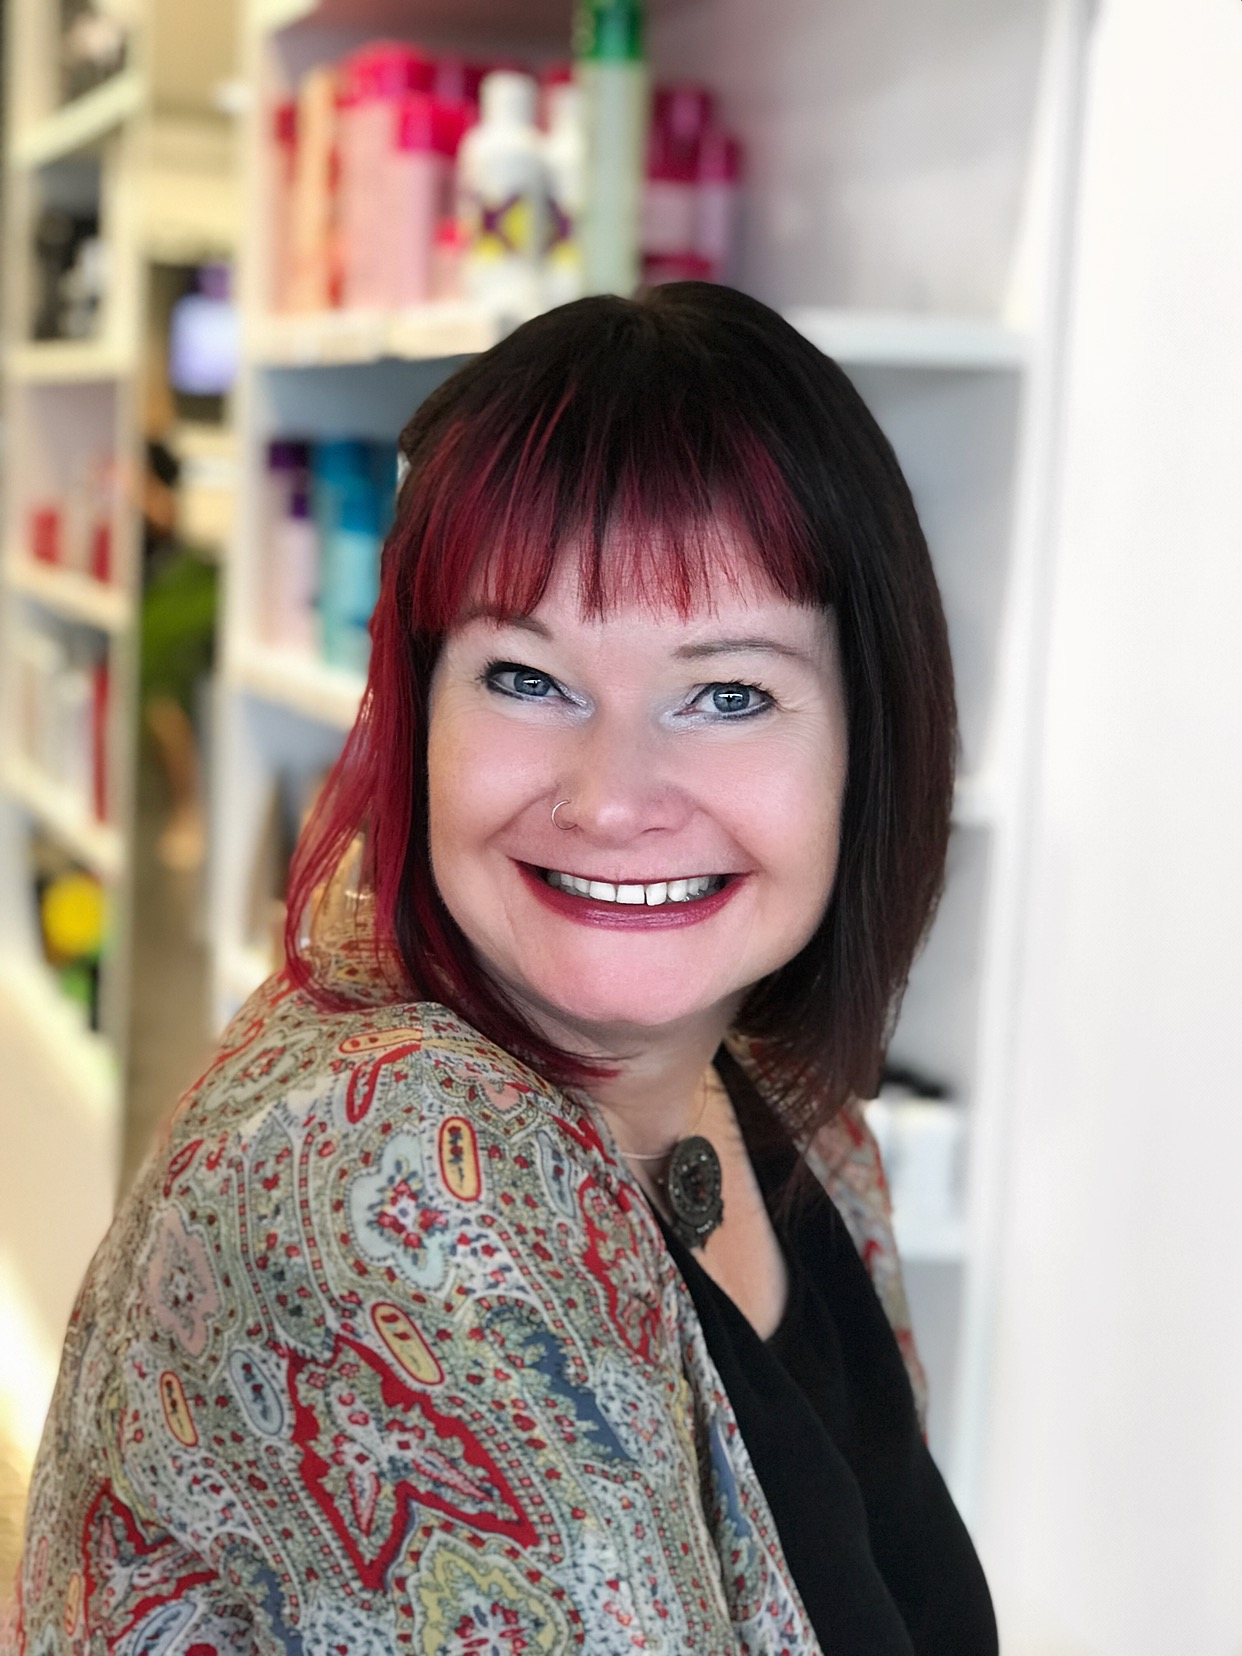 """Emma started hairdressing at the young age of 40. She joined the Silver Scissors team in February 2015. Since joining Silver Scissors Emma has proven to be a valuable member of the team bringing with her maturity & a natural ability to connect with the clients. She also helps behind the scenes with Marketing & Promotional work for Silver Scissors. Nothing makes Emma happier than an Avant Garde colour coupled with an alternative haircut. """" I am excited about the hairdressing industry it's great to have a new challenge. To be a truely great hairdresser it takes application & dedication & with the help of all the training on hand at Silver Scissors from all my caring & sharing co-workers it's achievable."""" . If you want to stand out in a room Emma is your hairdresser! Emma is also a member of The Schwarzkopf Made To Create Team."""